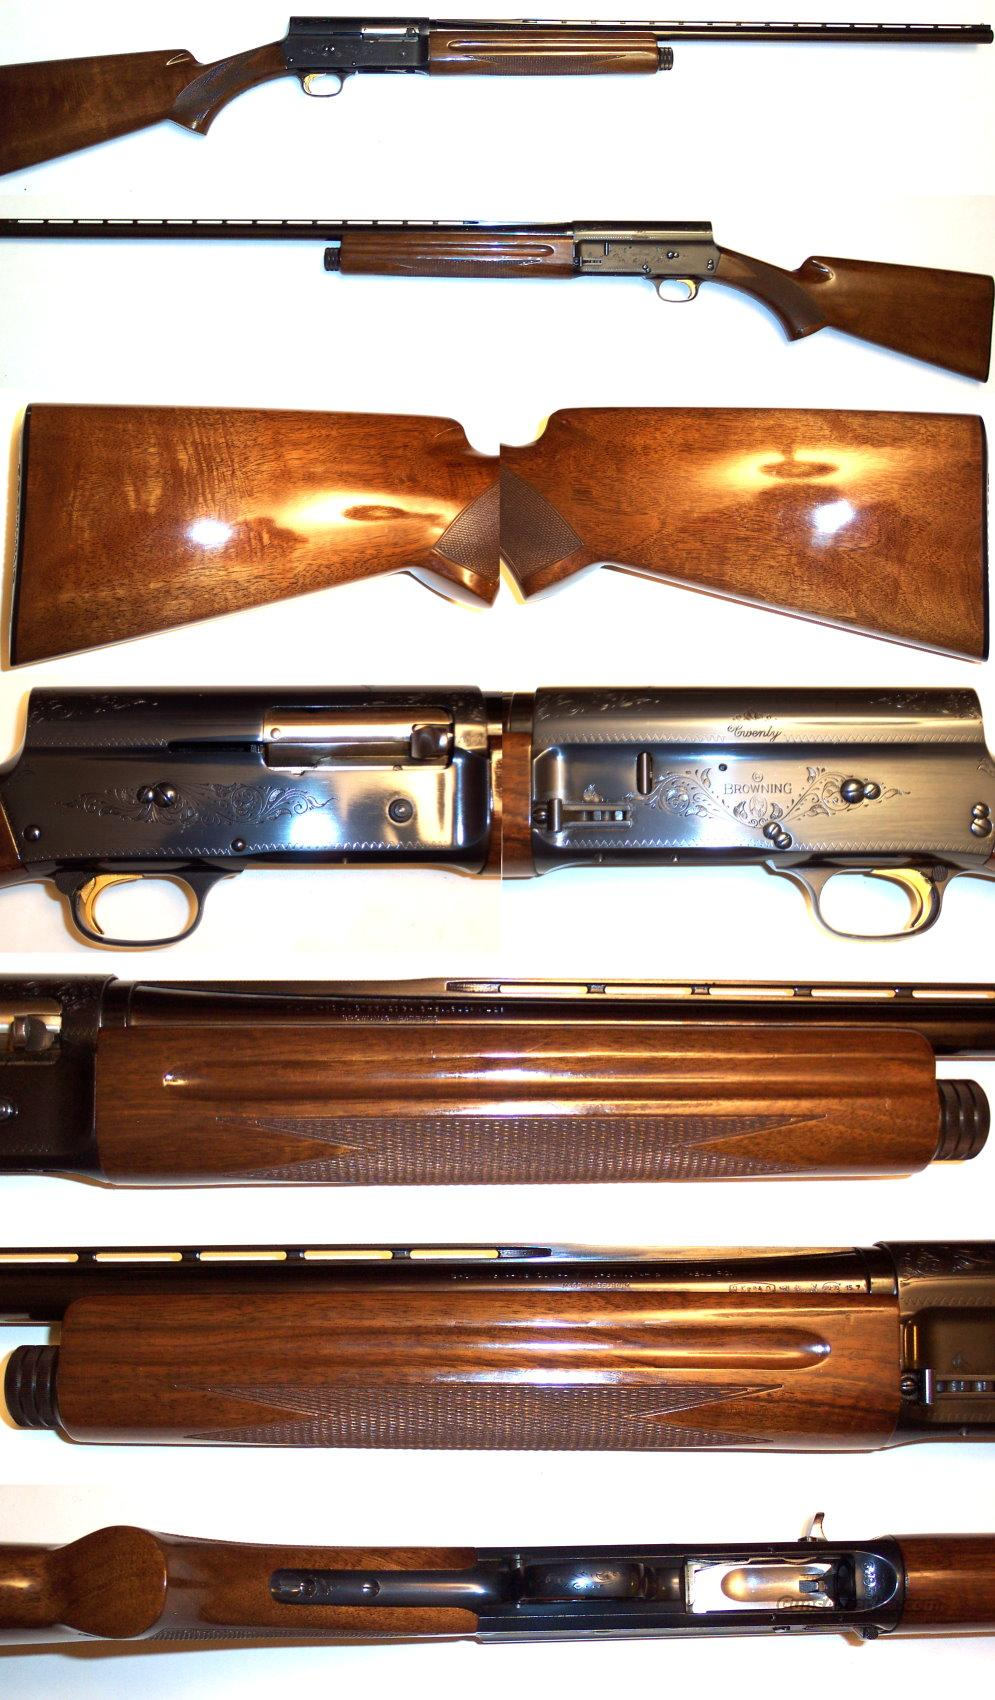 '71 Belgium Browning A5 20 gauge Exc Cond  Guns > Shotguns > Browning Shotguns > Autoloaders > Hunting